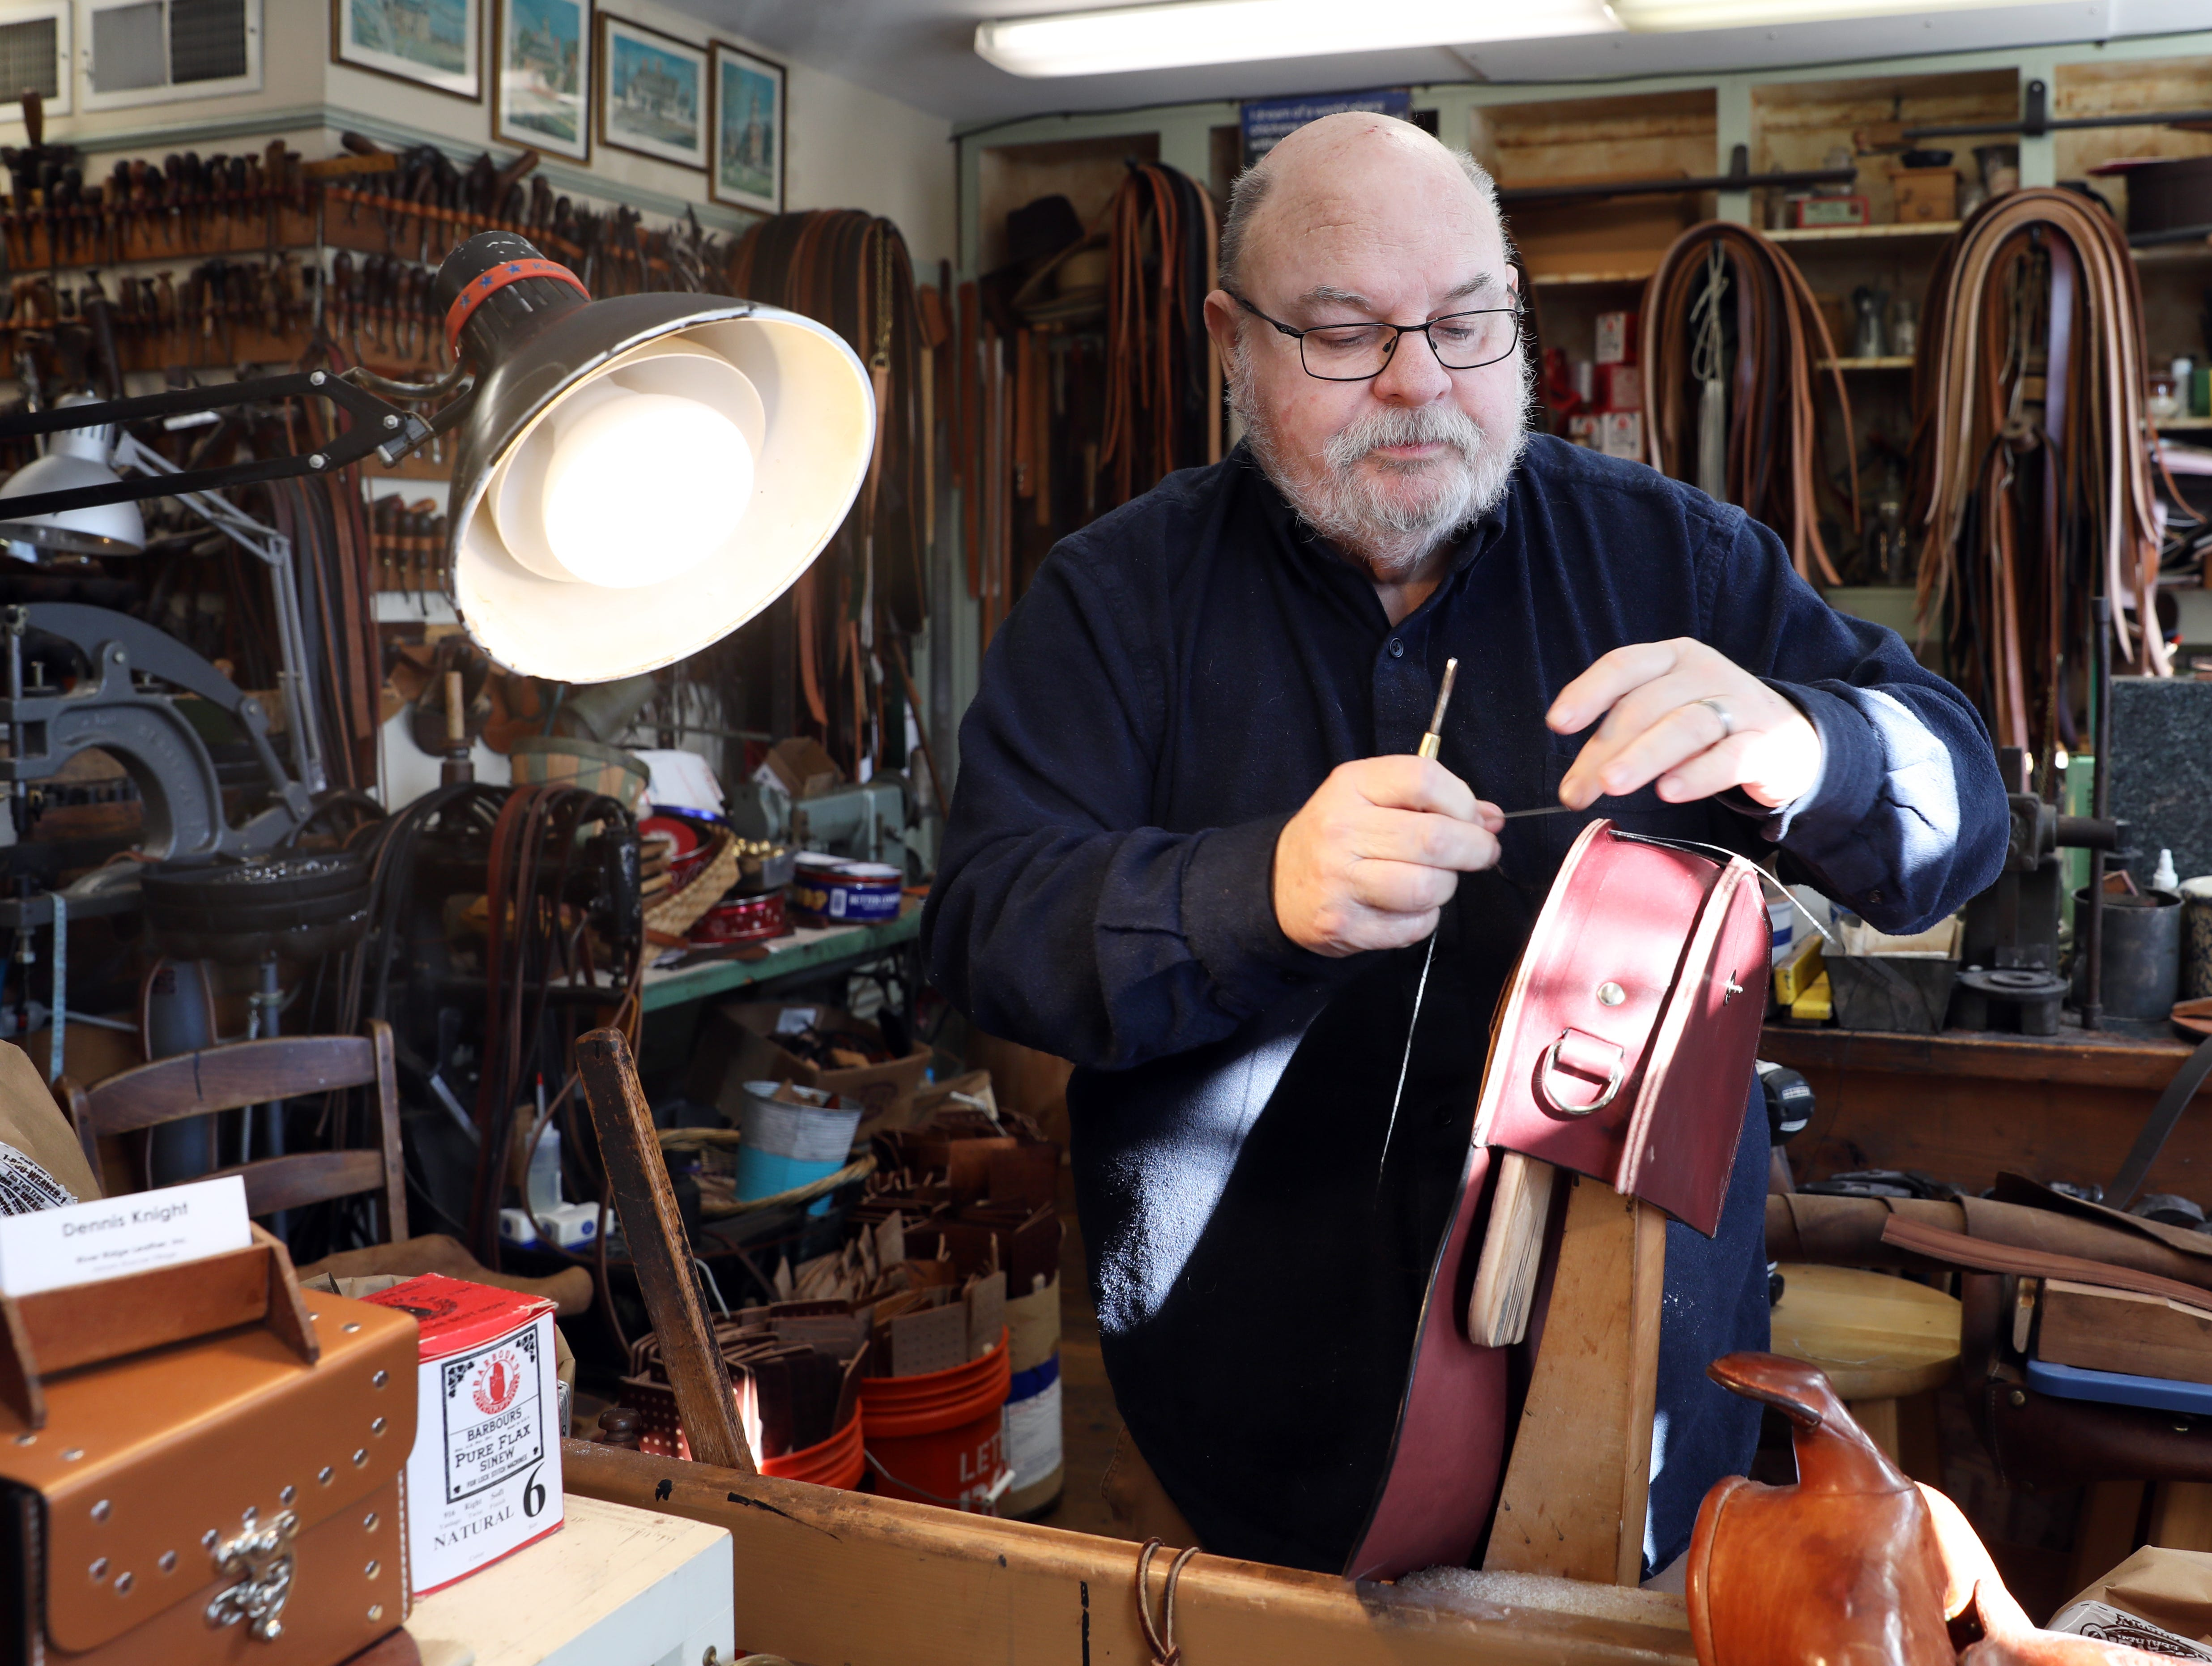 Dennis Knight, owner of River Ridge Leather Company in Roscoe Village, works on a bag in his shop.